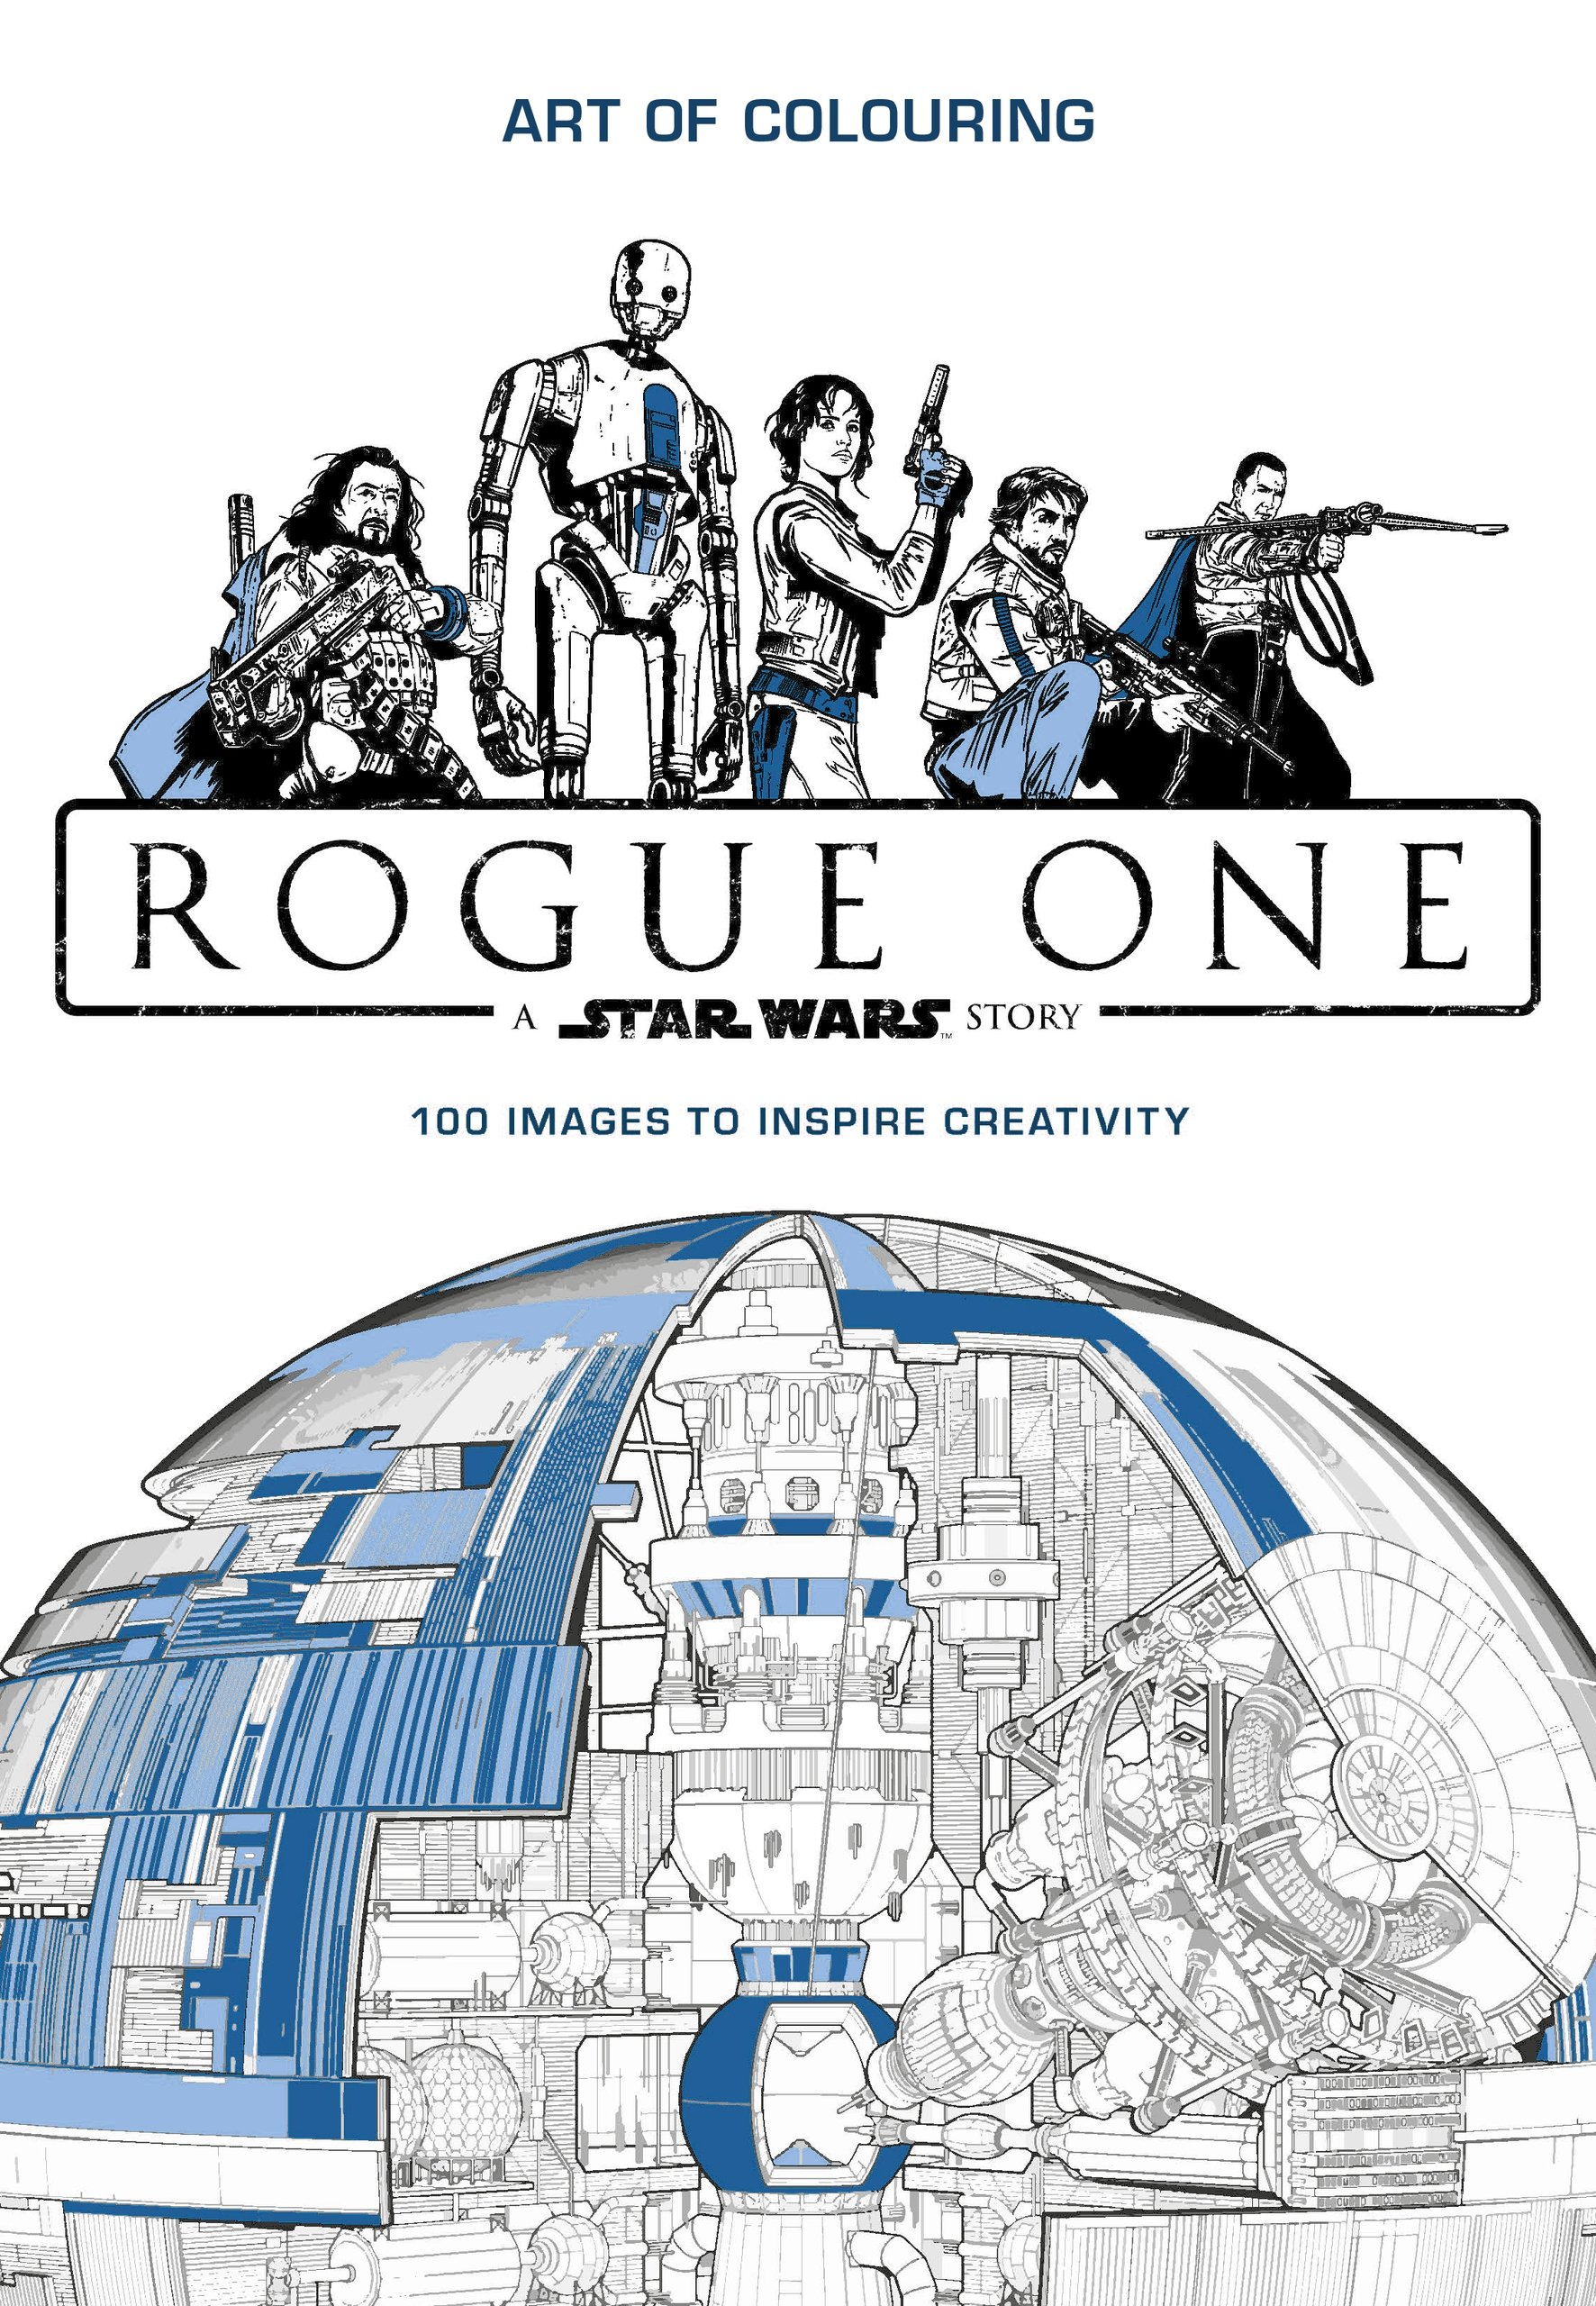 Image For Star Wars Rogue One<br>Art of Coloring